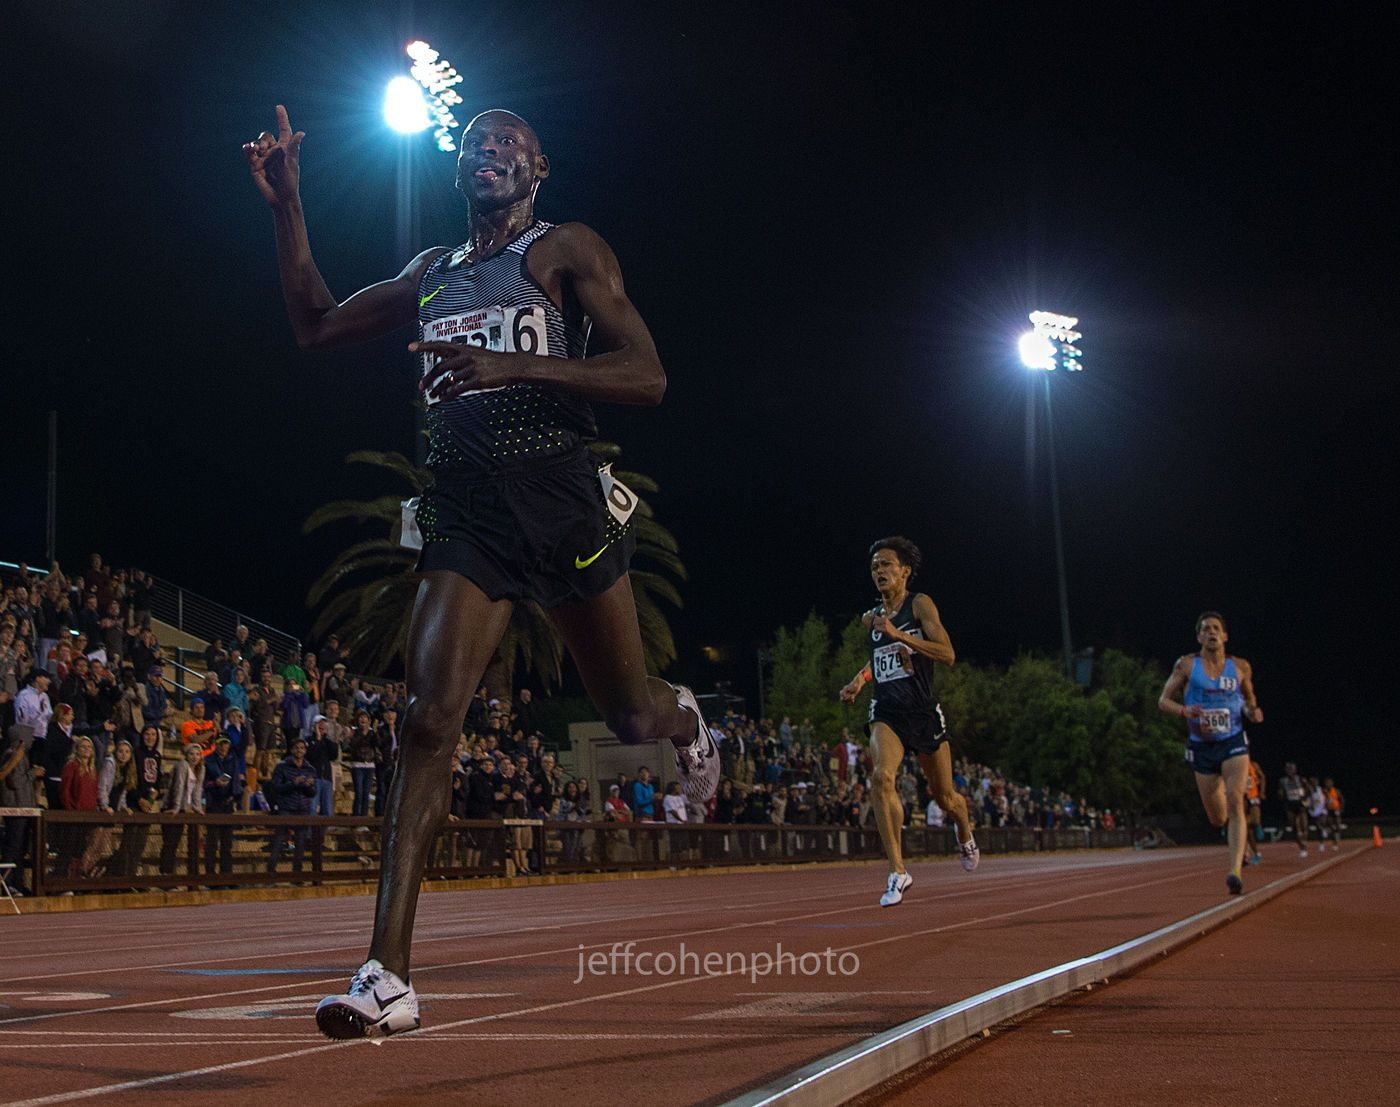 1payton_jordan_meet_lagat_10k_wr_masters_5_1_16__jeff_cohen_photo_8717_web.jpg